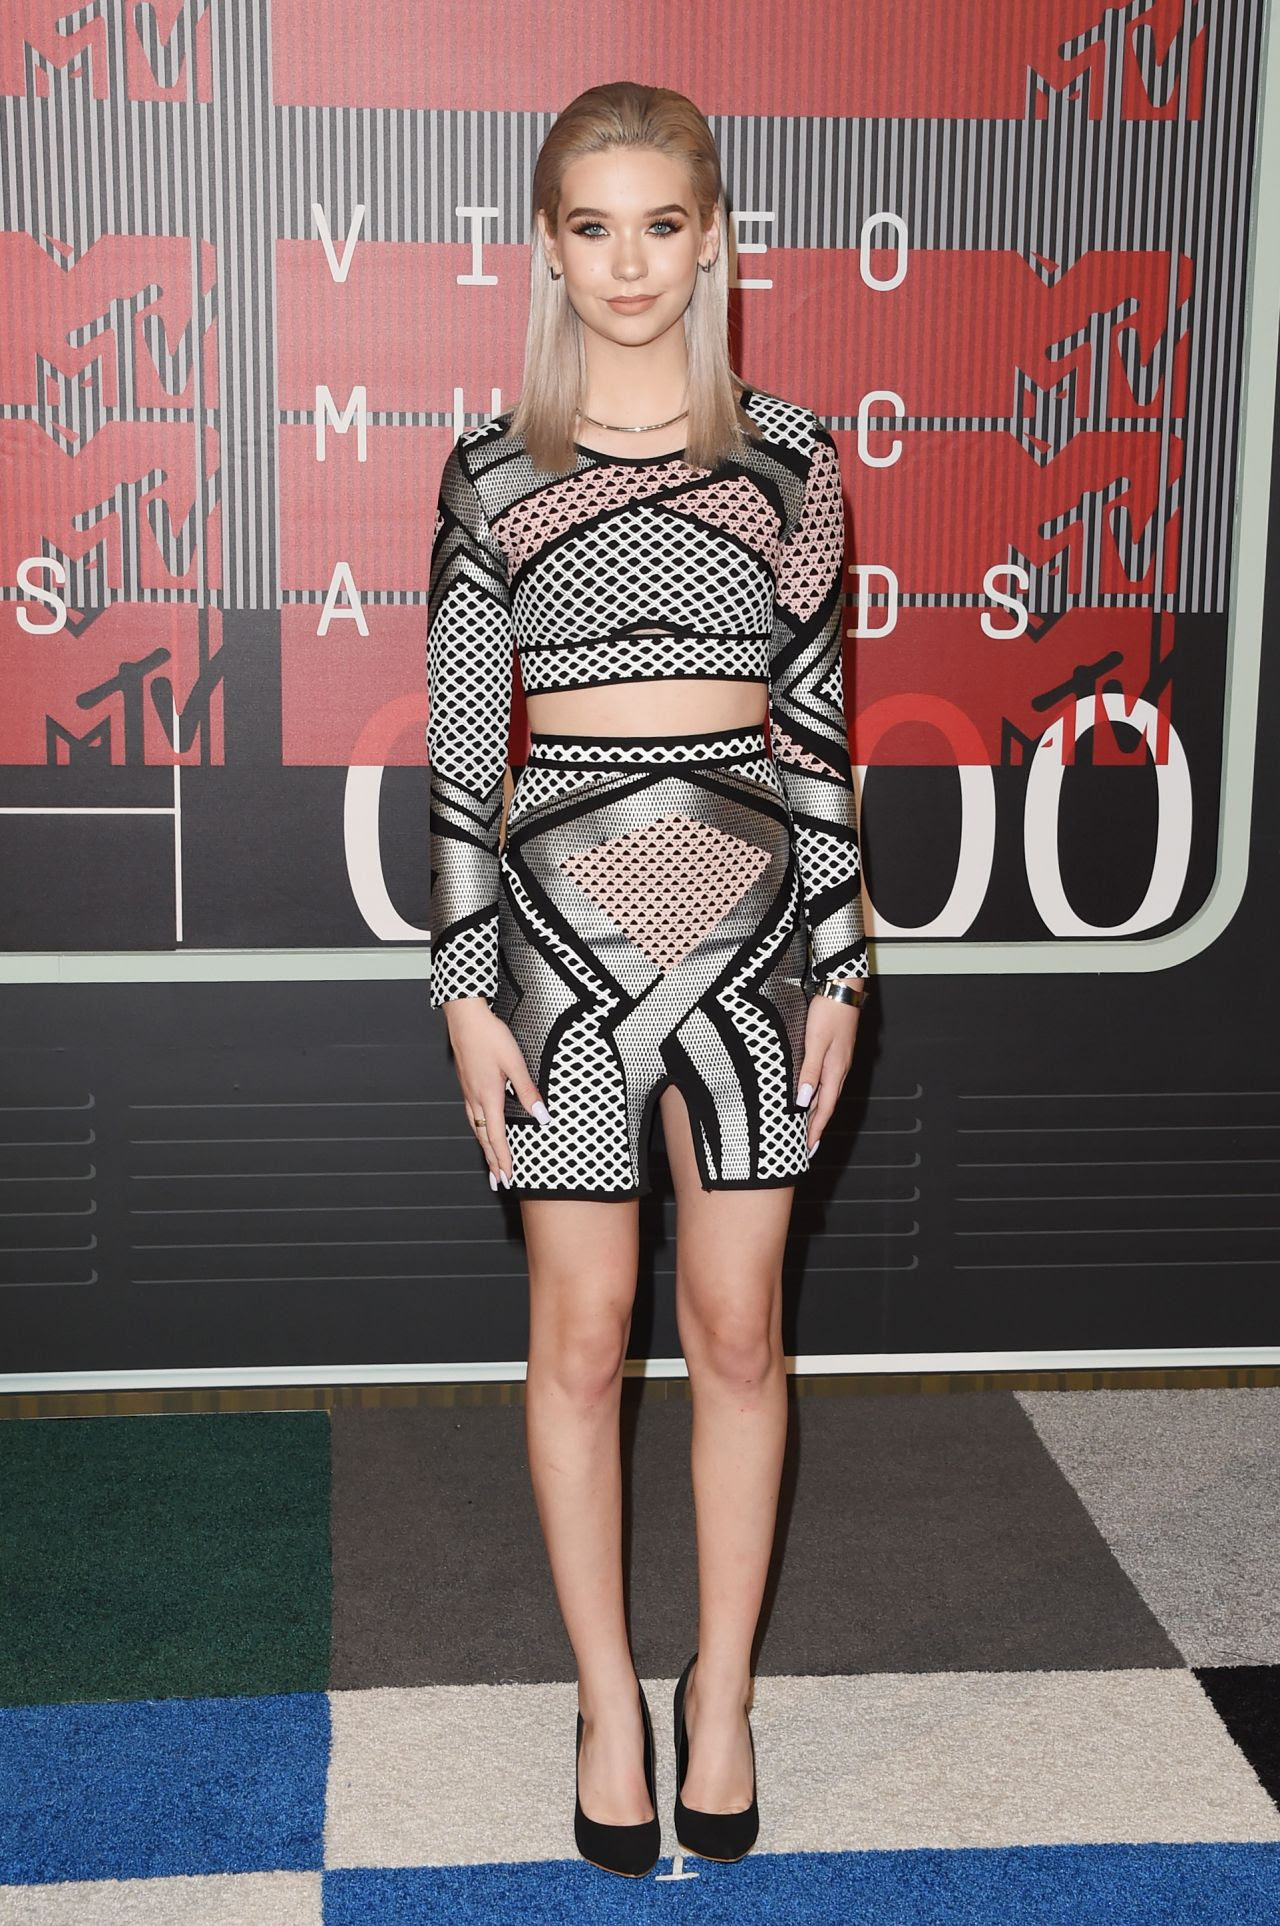 http://celebmafia.com/wp-content/uploads/2015/08/amanda-steele-2015-mtv-video-music-awards-at-microsoft-theater-in-los-angeles_5.jpg